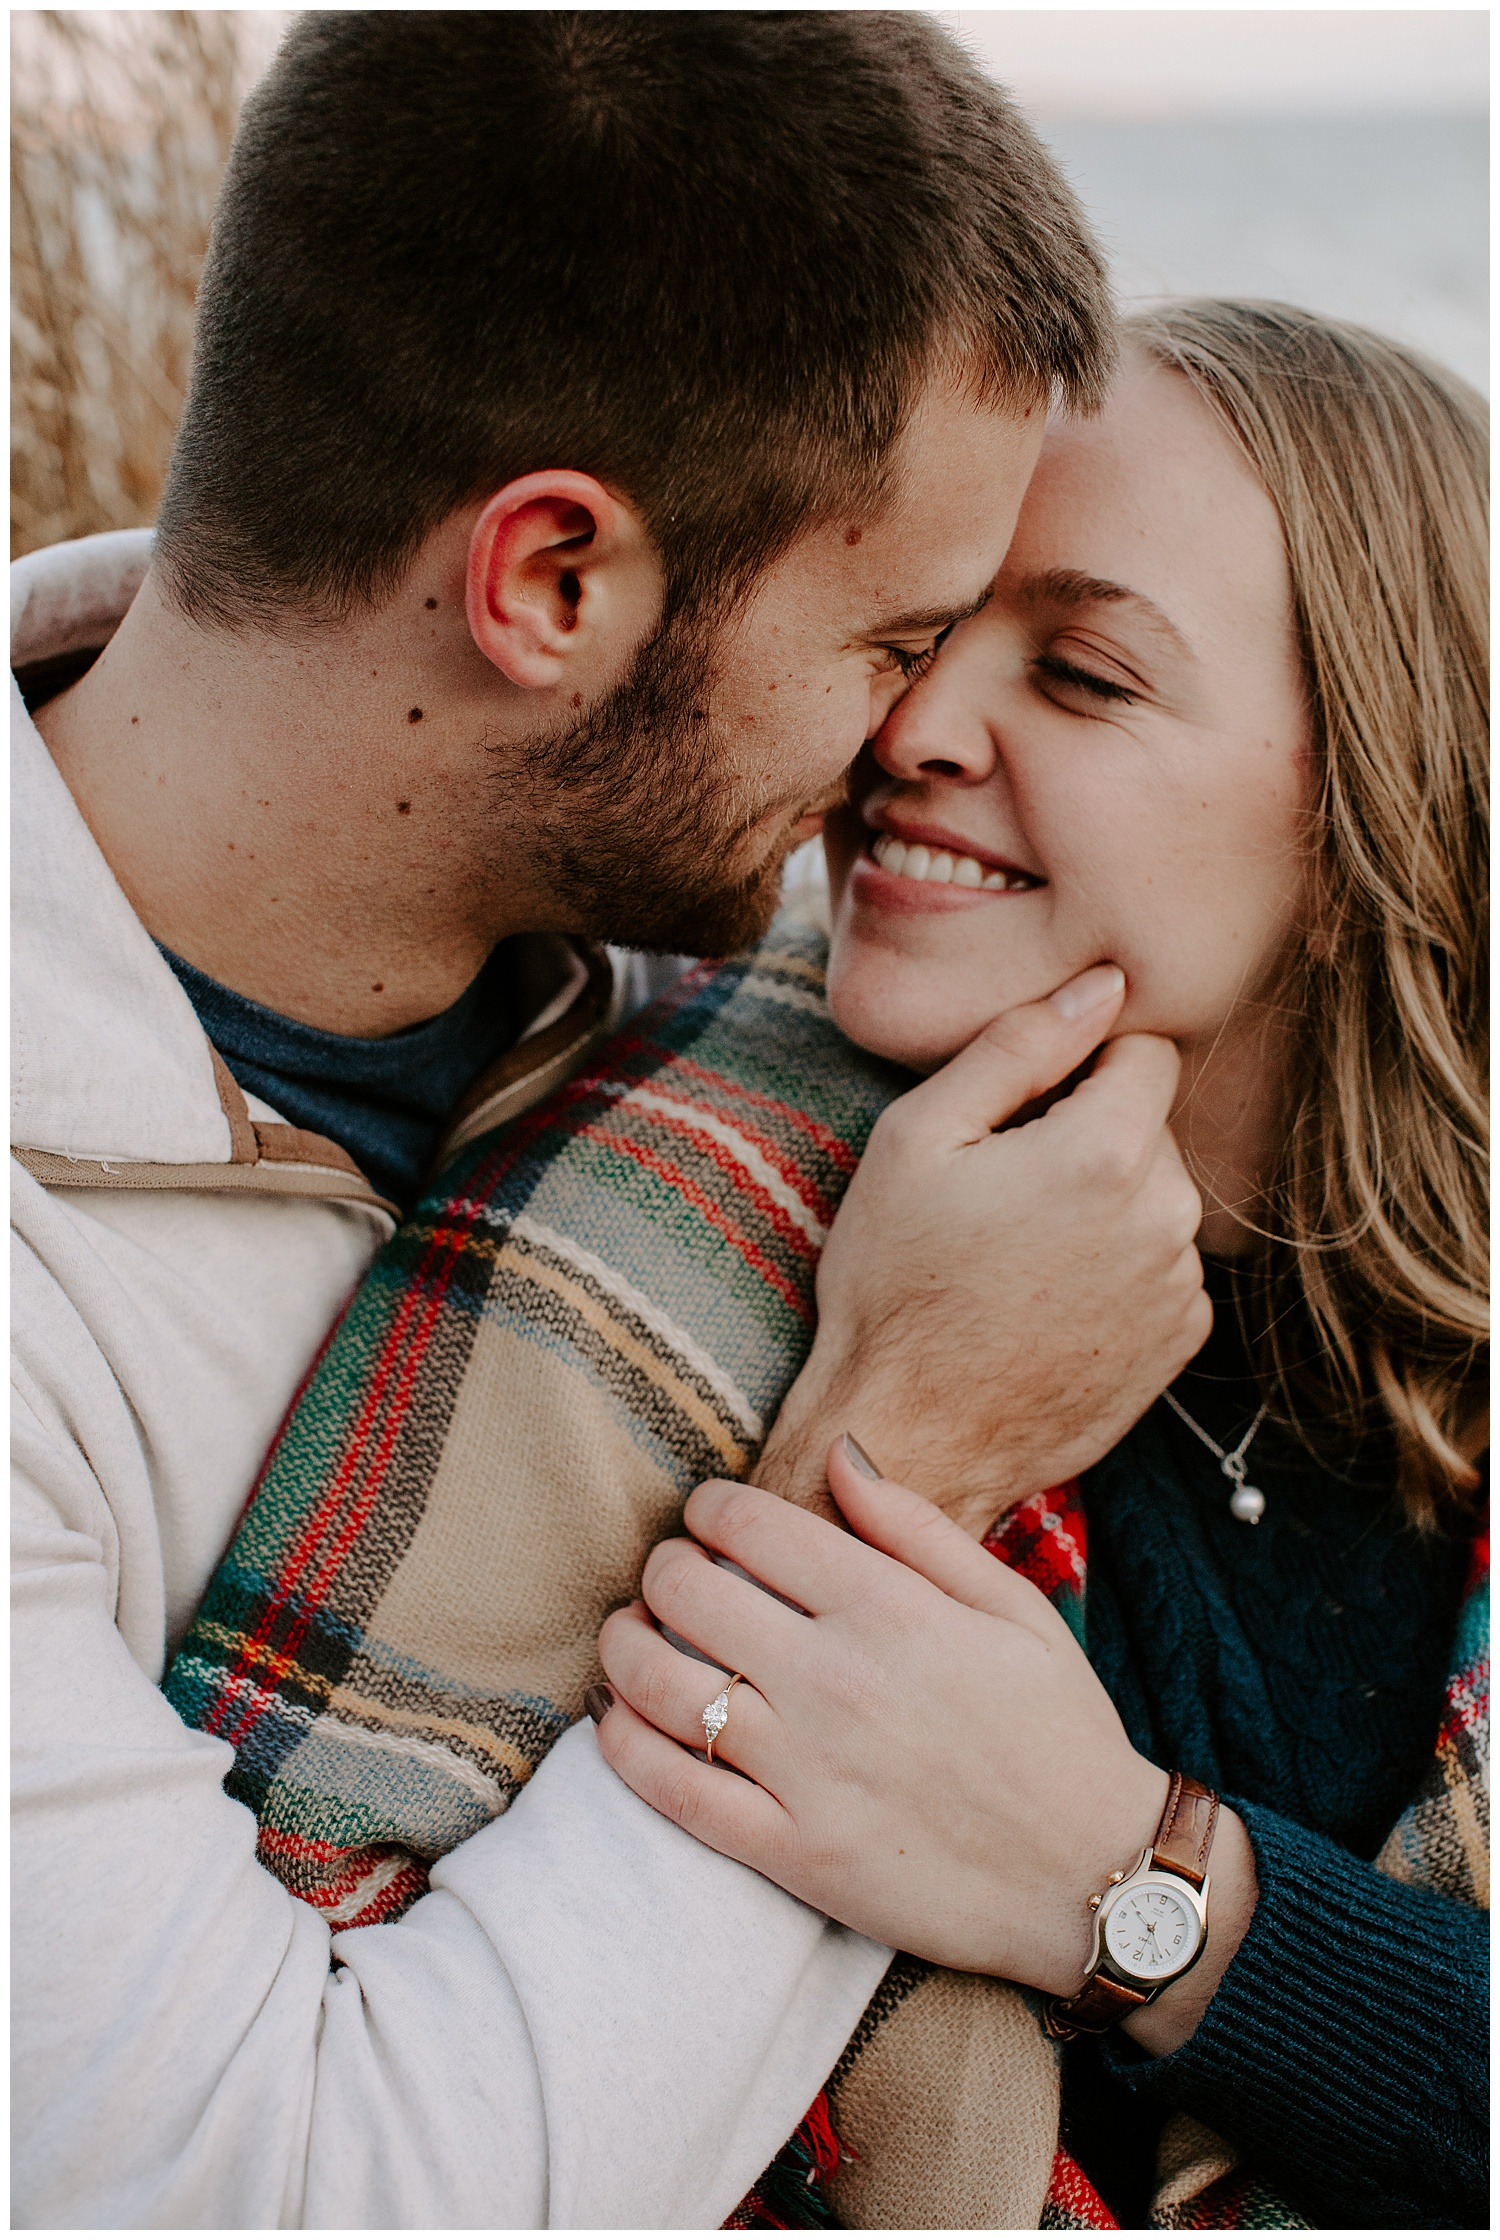 jay_kalyn_beavertail_beach_winter_engagement_session_jamestown_rhode_island03.jpg